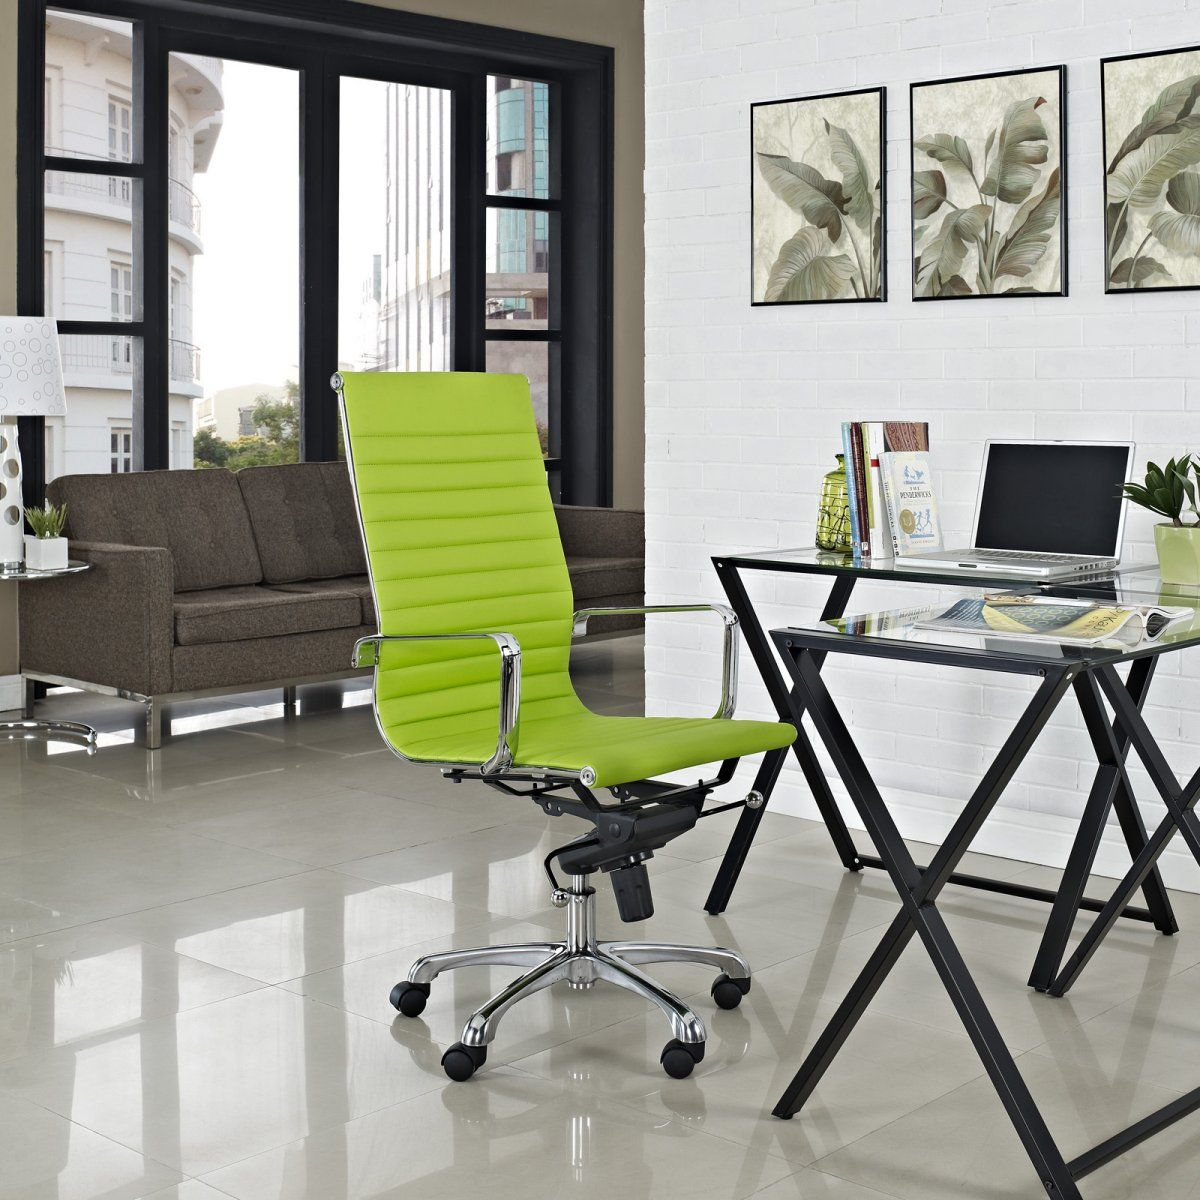 minimalist office chair. Modern Minimalist Office Design With Stylish Green Swivel Chair Over Small Desk: High Back